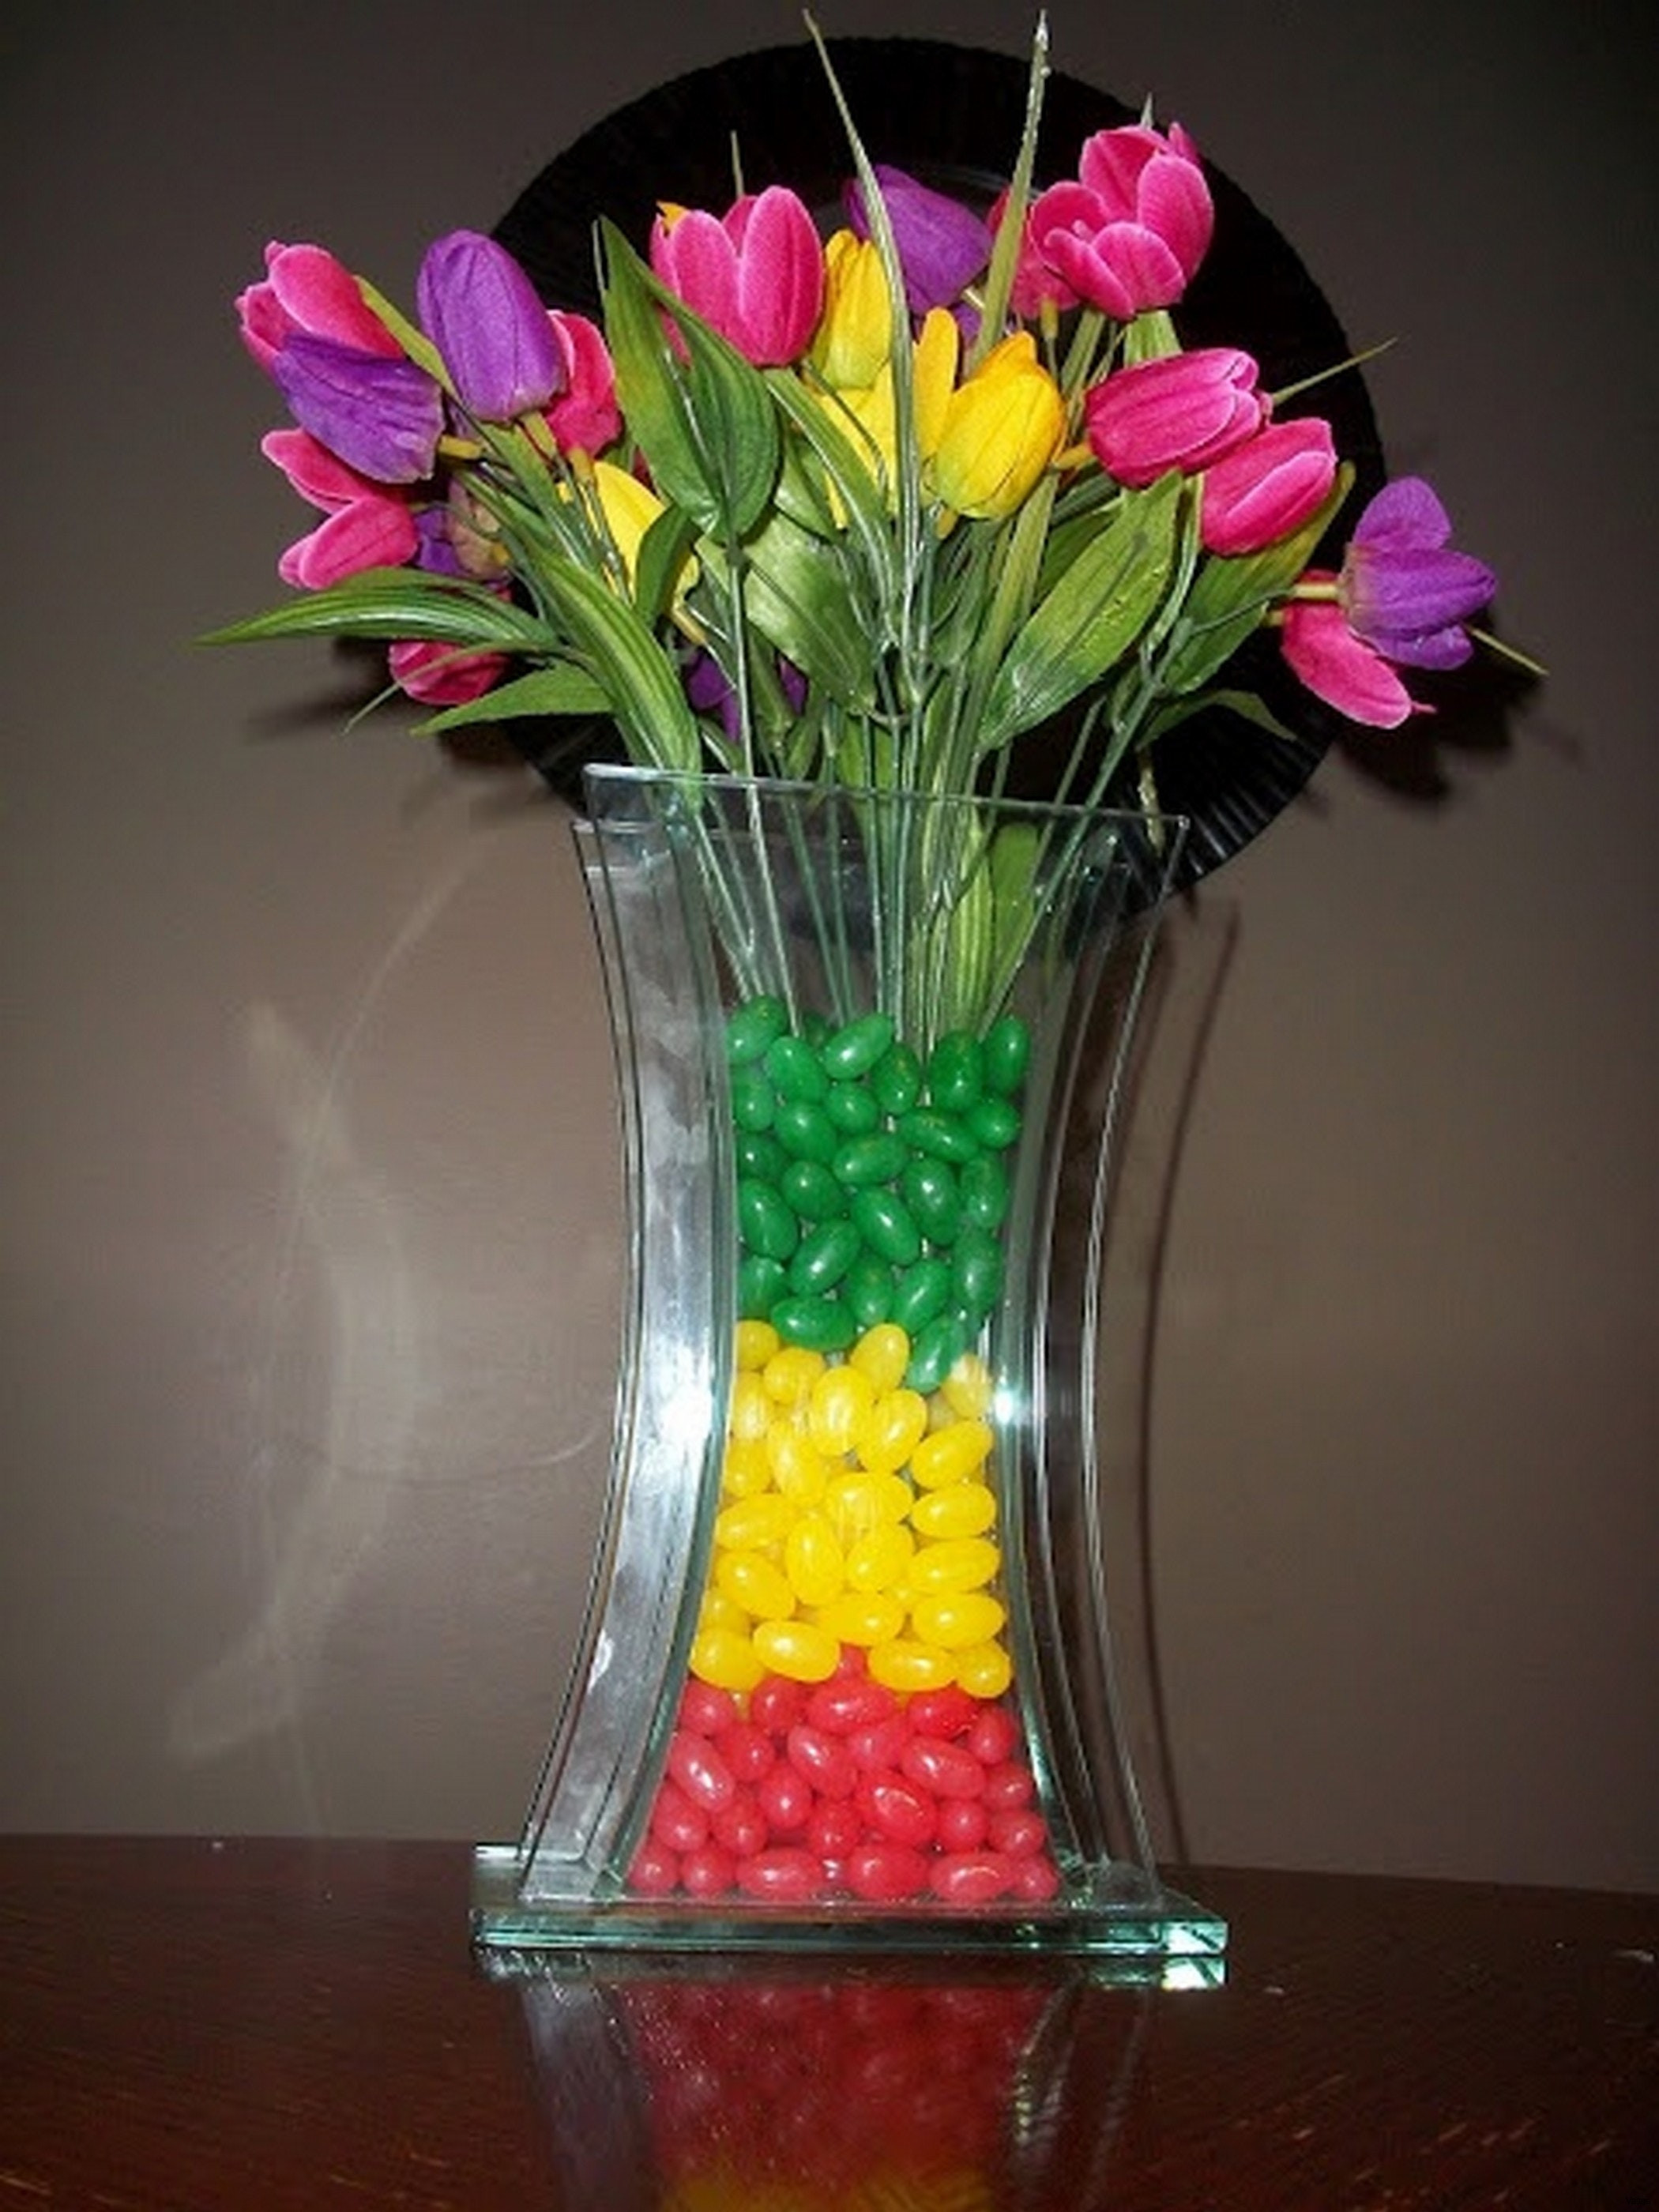 lavender glass vase of vase filler beads photos 15 cheap and easy diy vase filler ideas 3h intended for 15 cheap and easy diy vase filler ideas 3h vases flower i 0d scheme